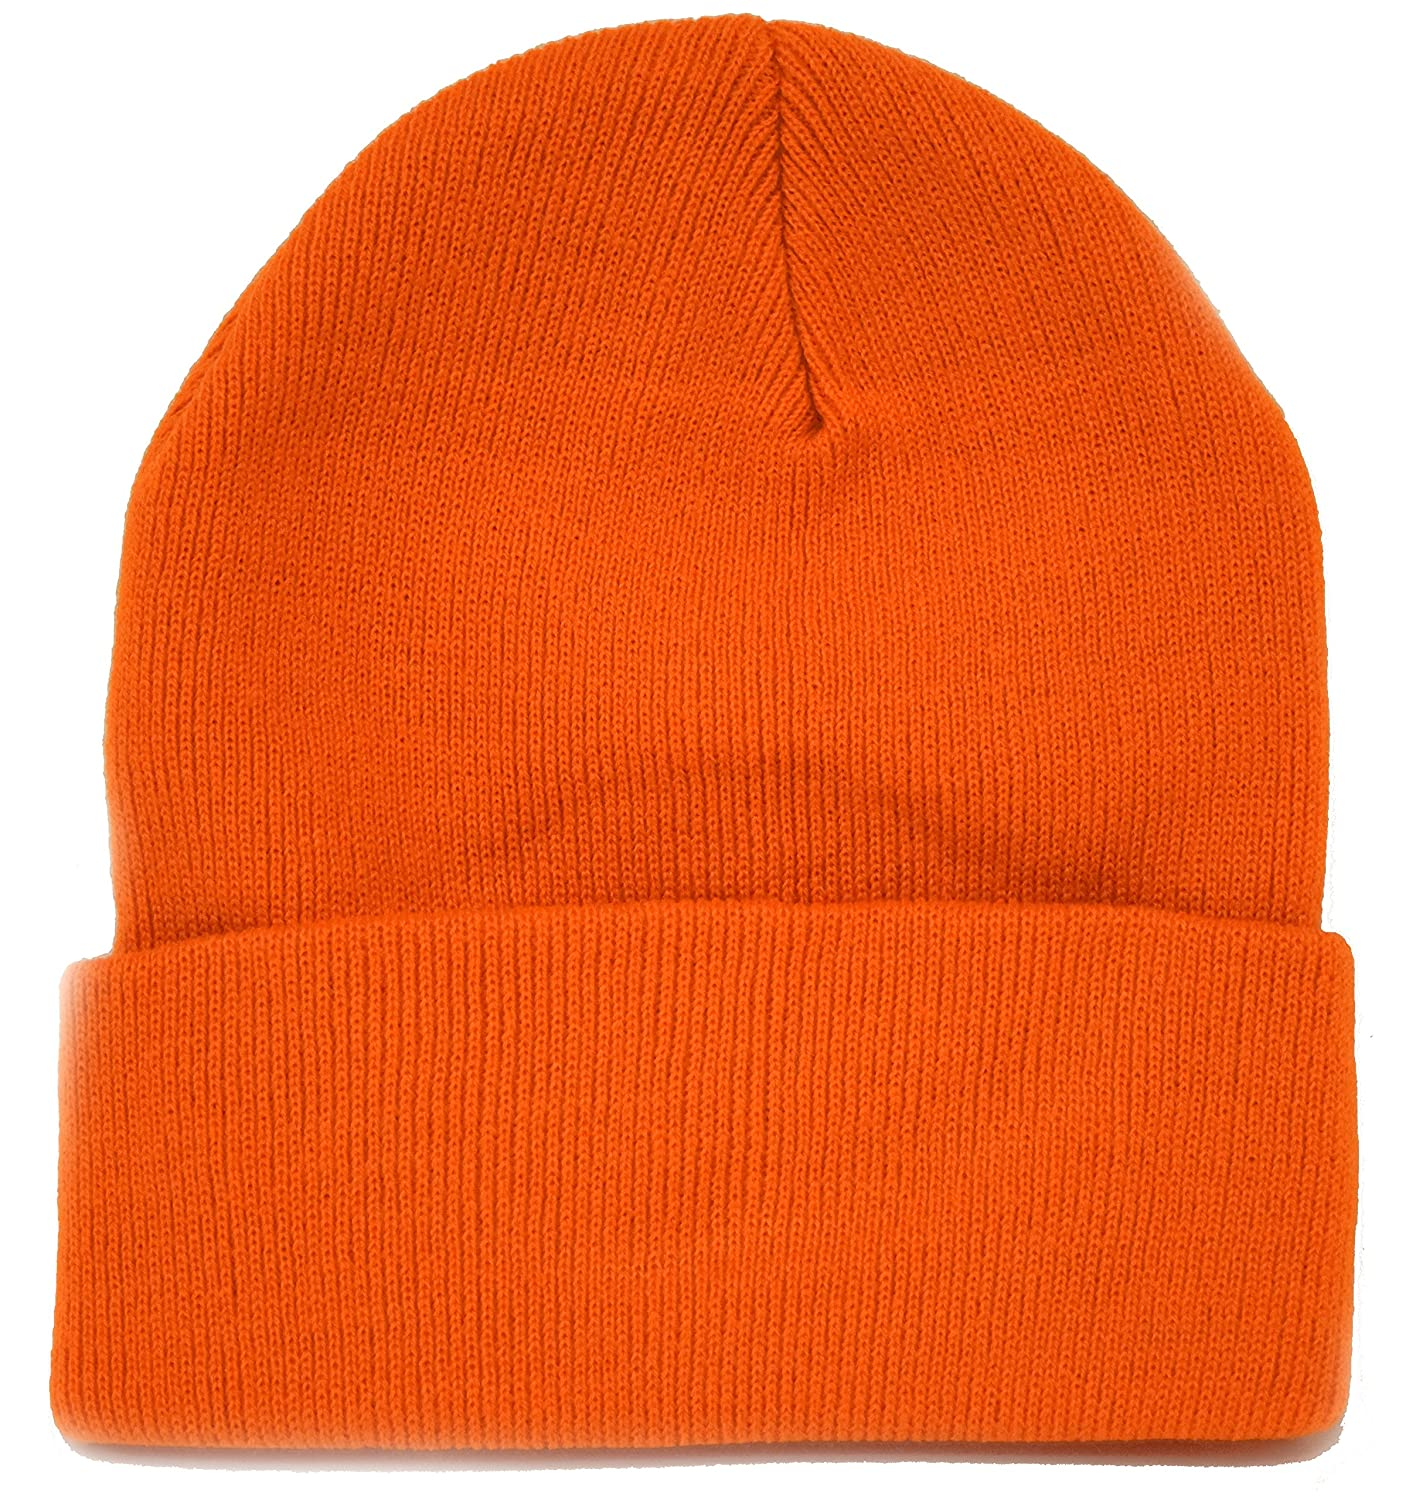 Amazon.com  Long Knit Beanie Ski Cap Hat in Orange  Clothing 0bd5e216673